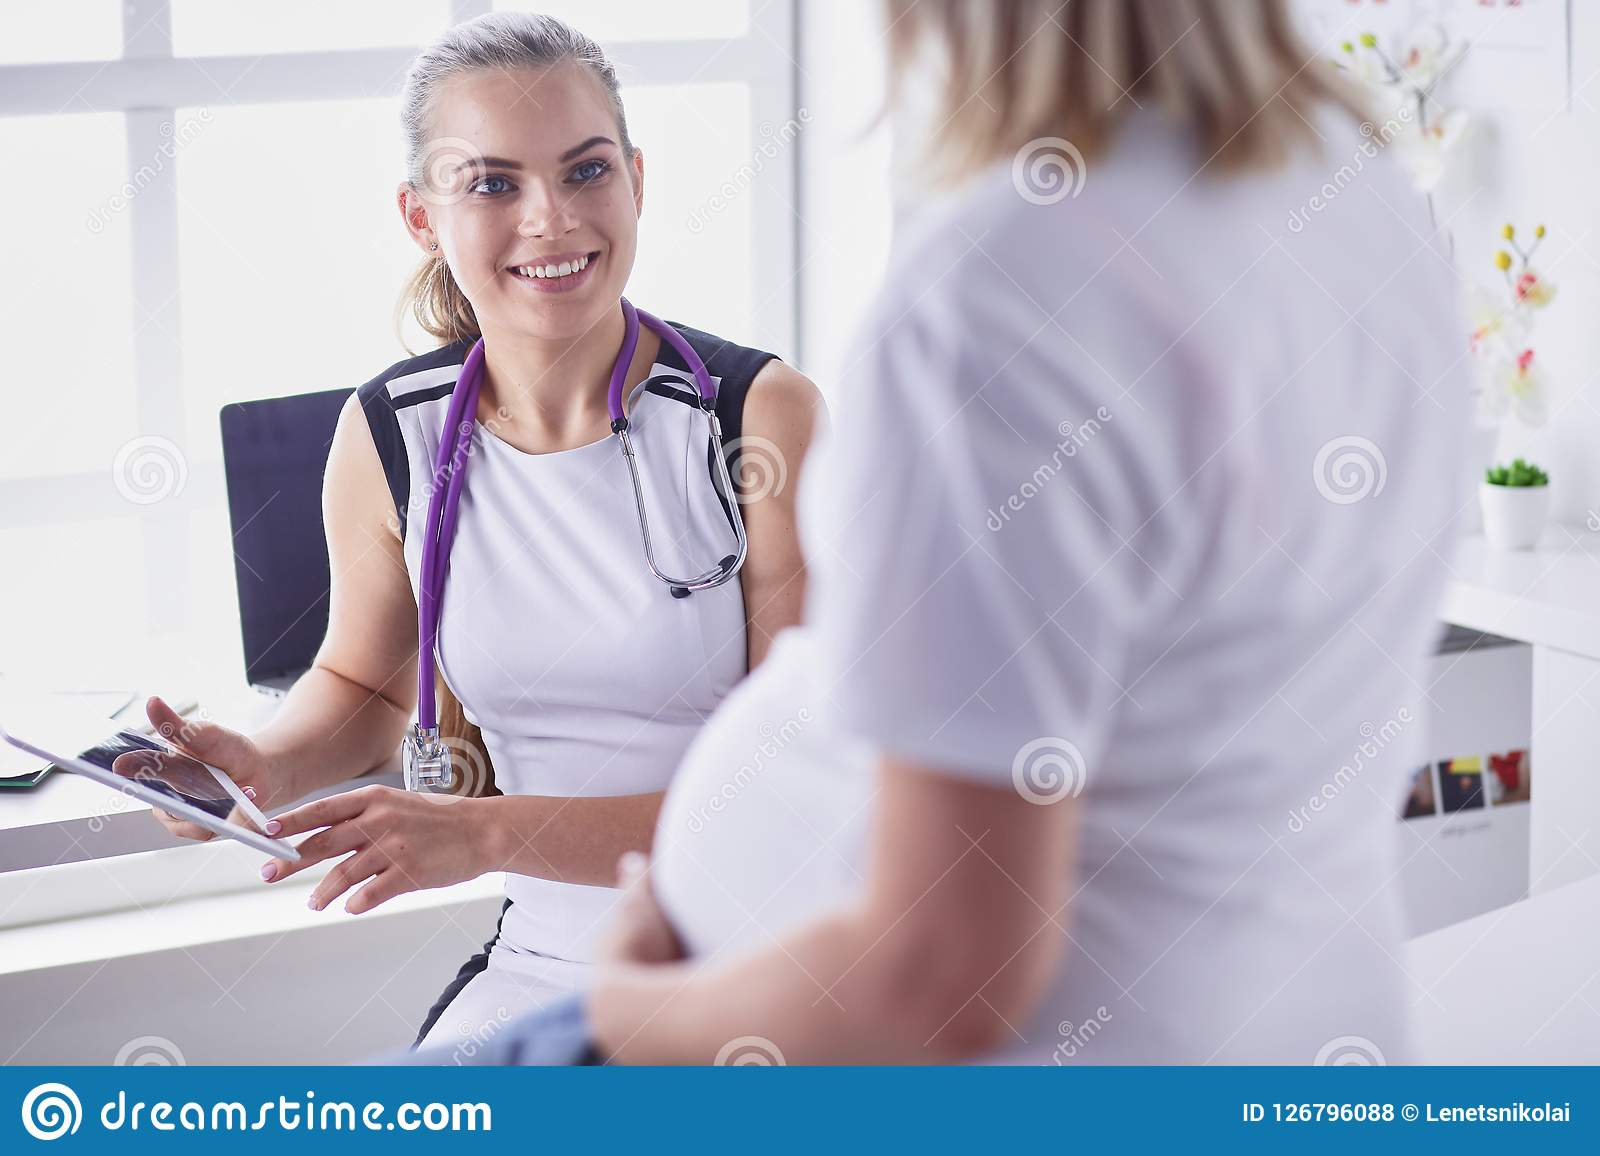 The Pregnant Woman Visiting Doctor For Consultation Stock